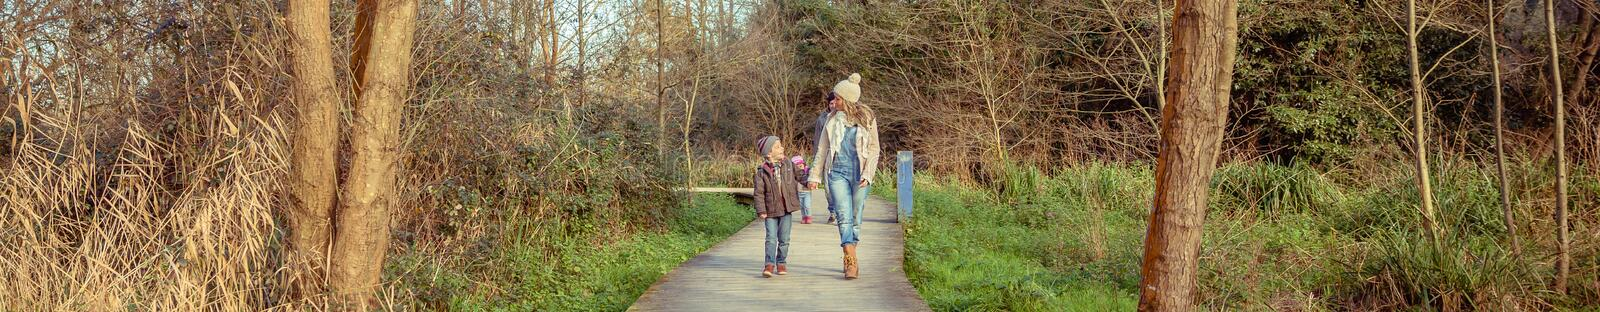 Happy family walking together holding hands in the forest stock photography